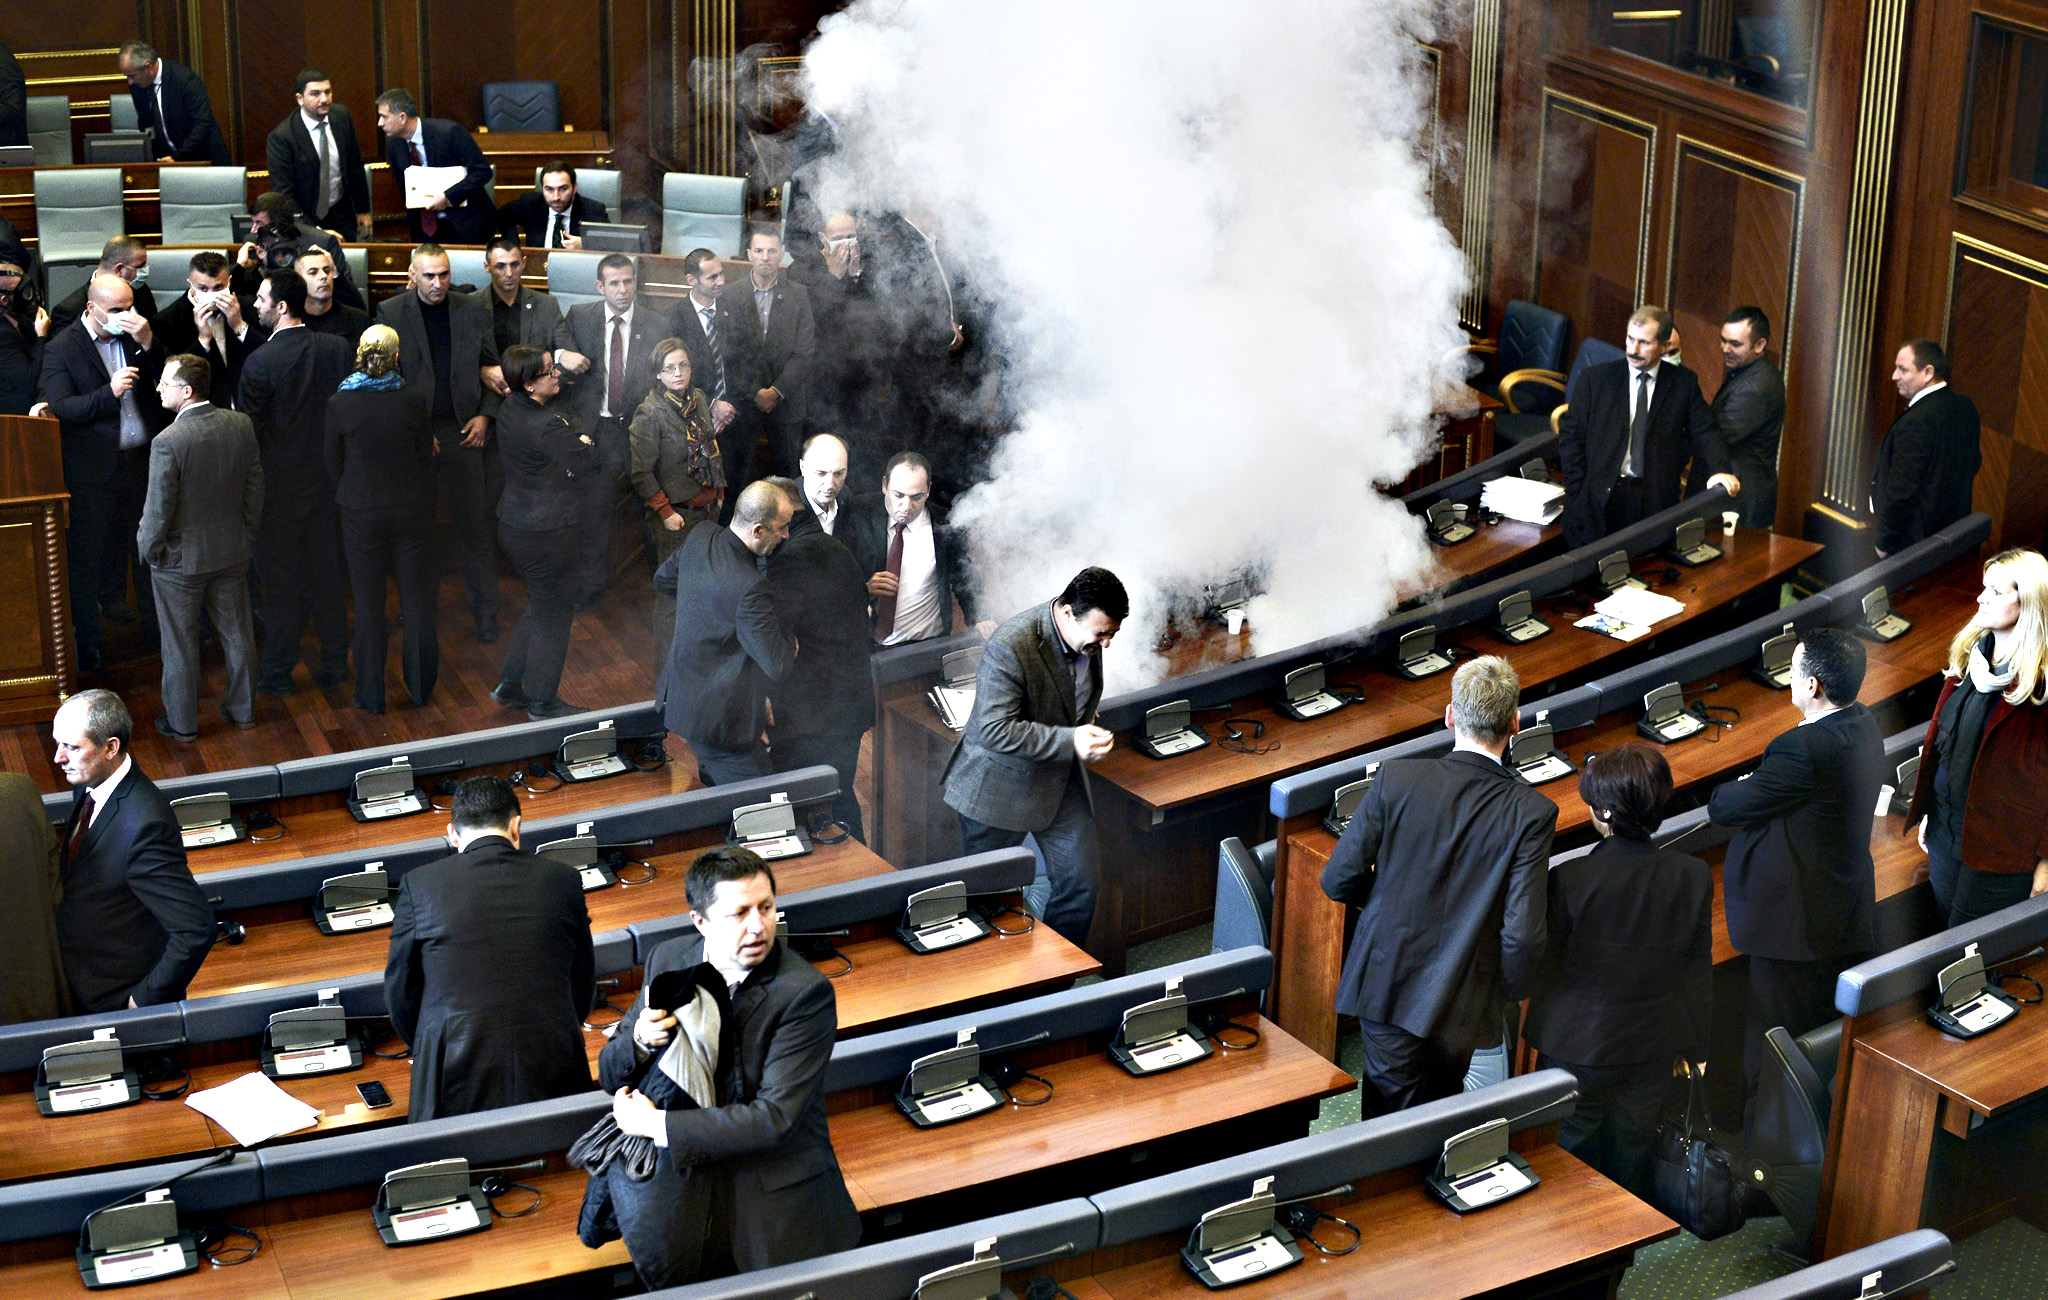 Opposition lawmakers throw tear gas during a session of Kosovo's parliament in Pristina, Kosovo, on Monday. Opposition lawmakers used tear gas at the start of the parliament session to protest against the agreements that Kosovo's government reached during the EU-brokered dialogue with Serbia.